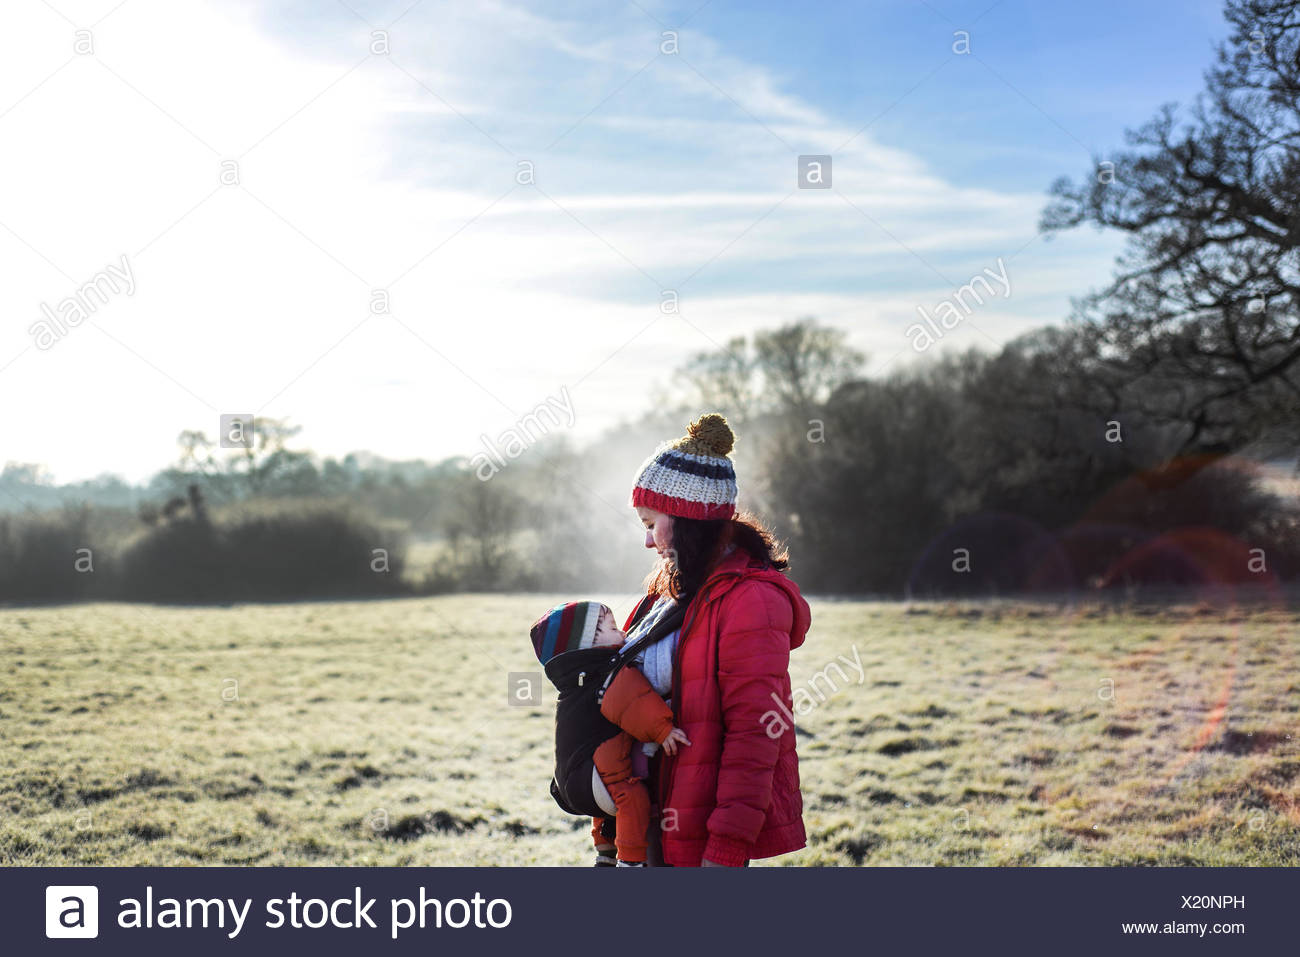 Woman in rural setting, carrying young baby in sling - Stock Image